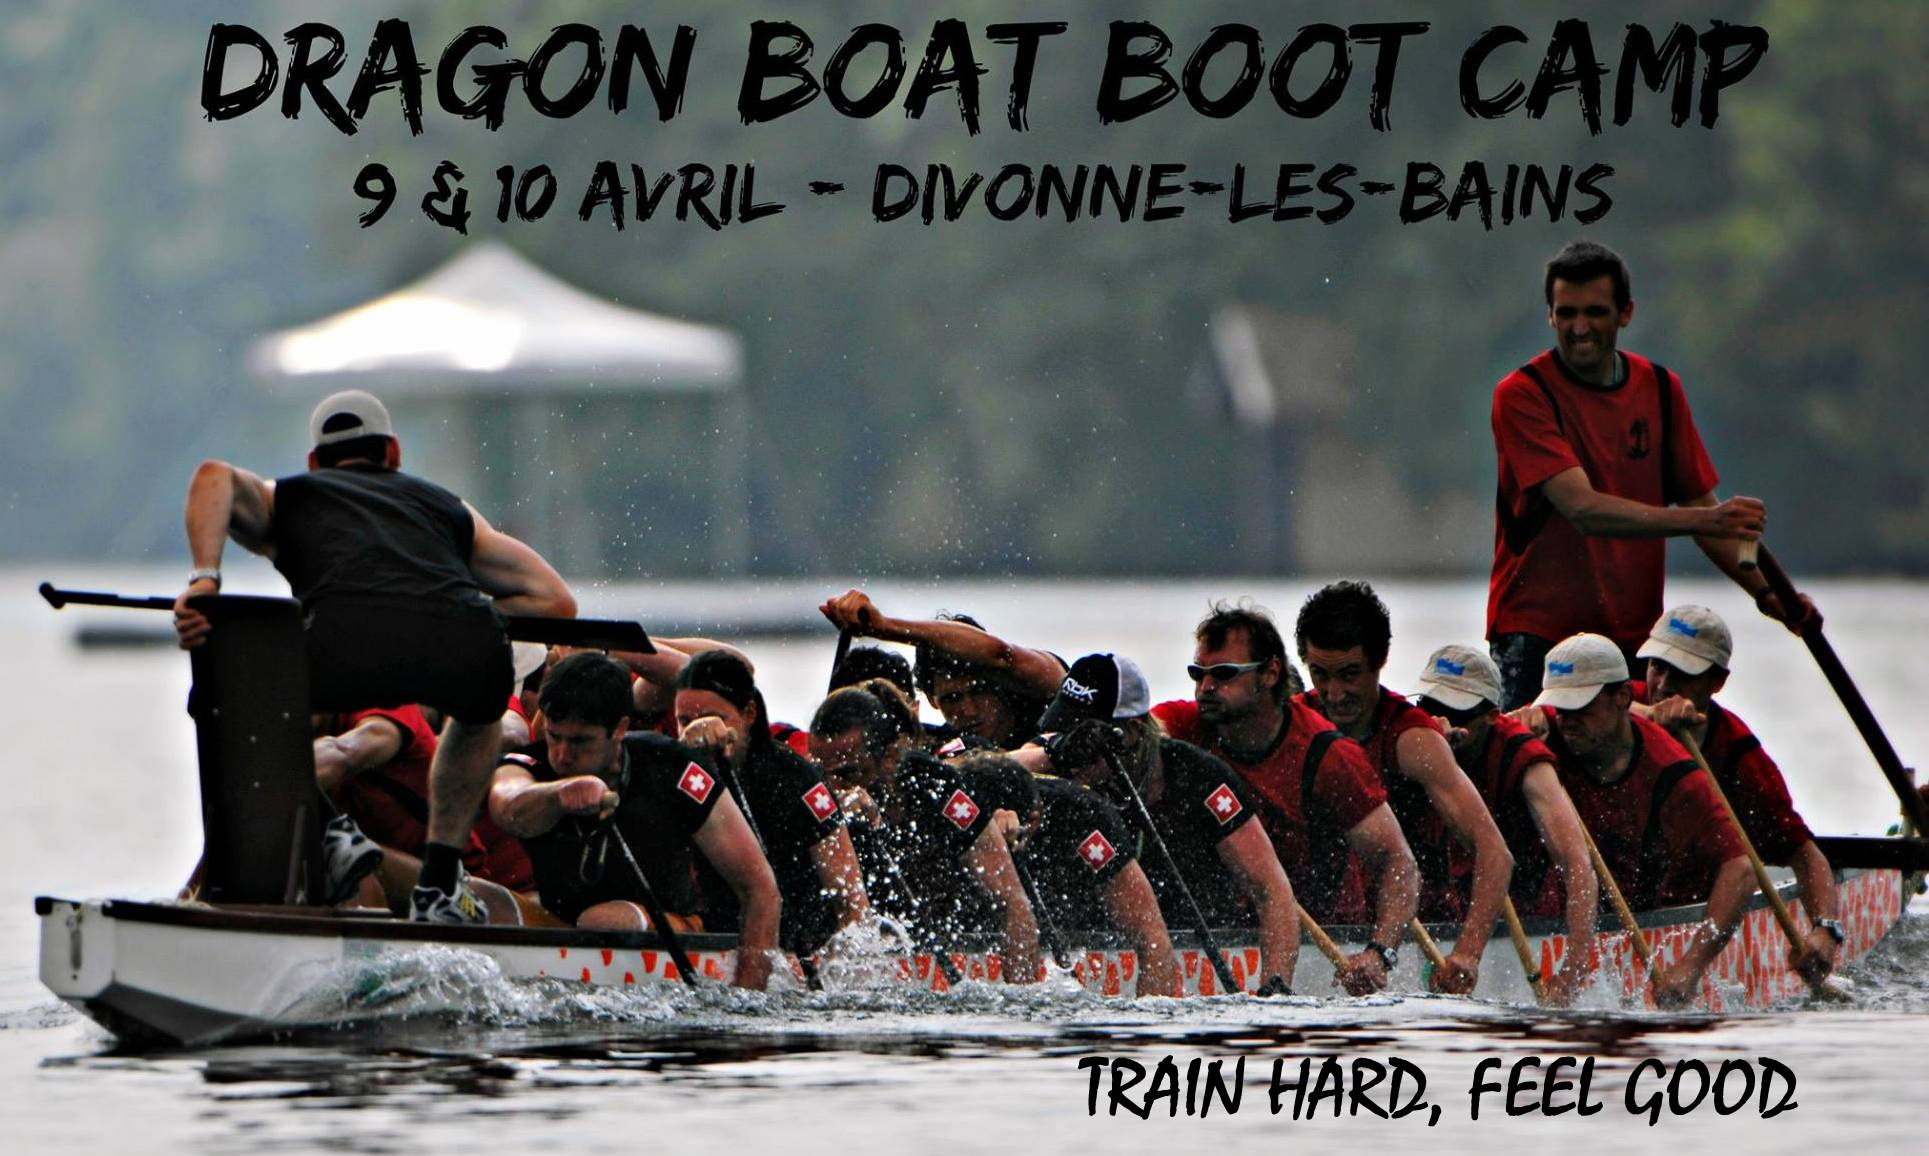 entrainement dragon boat camp boot